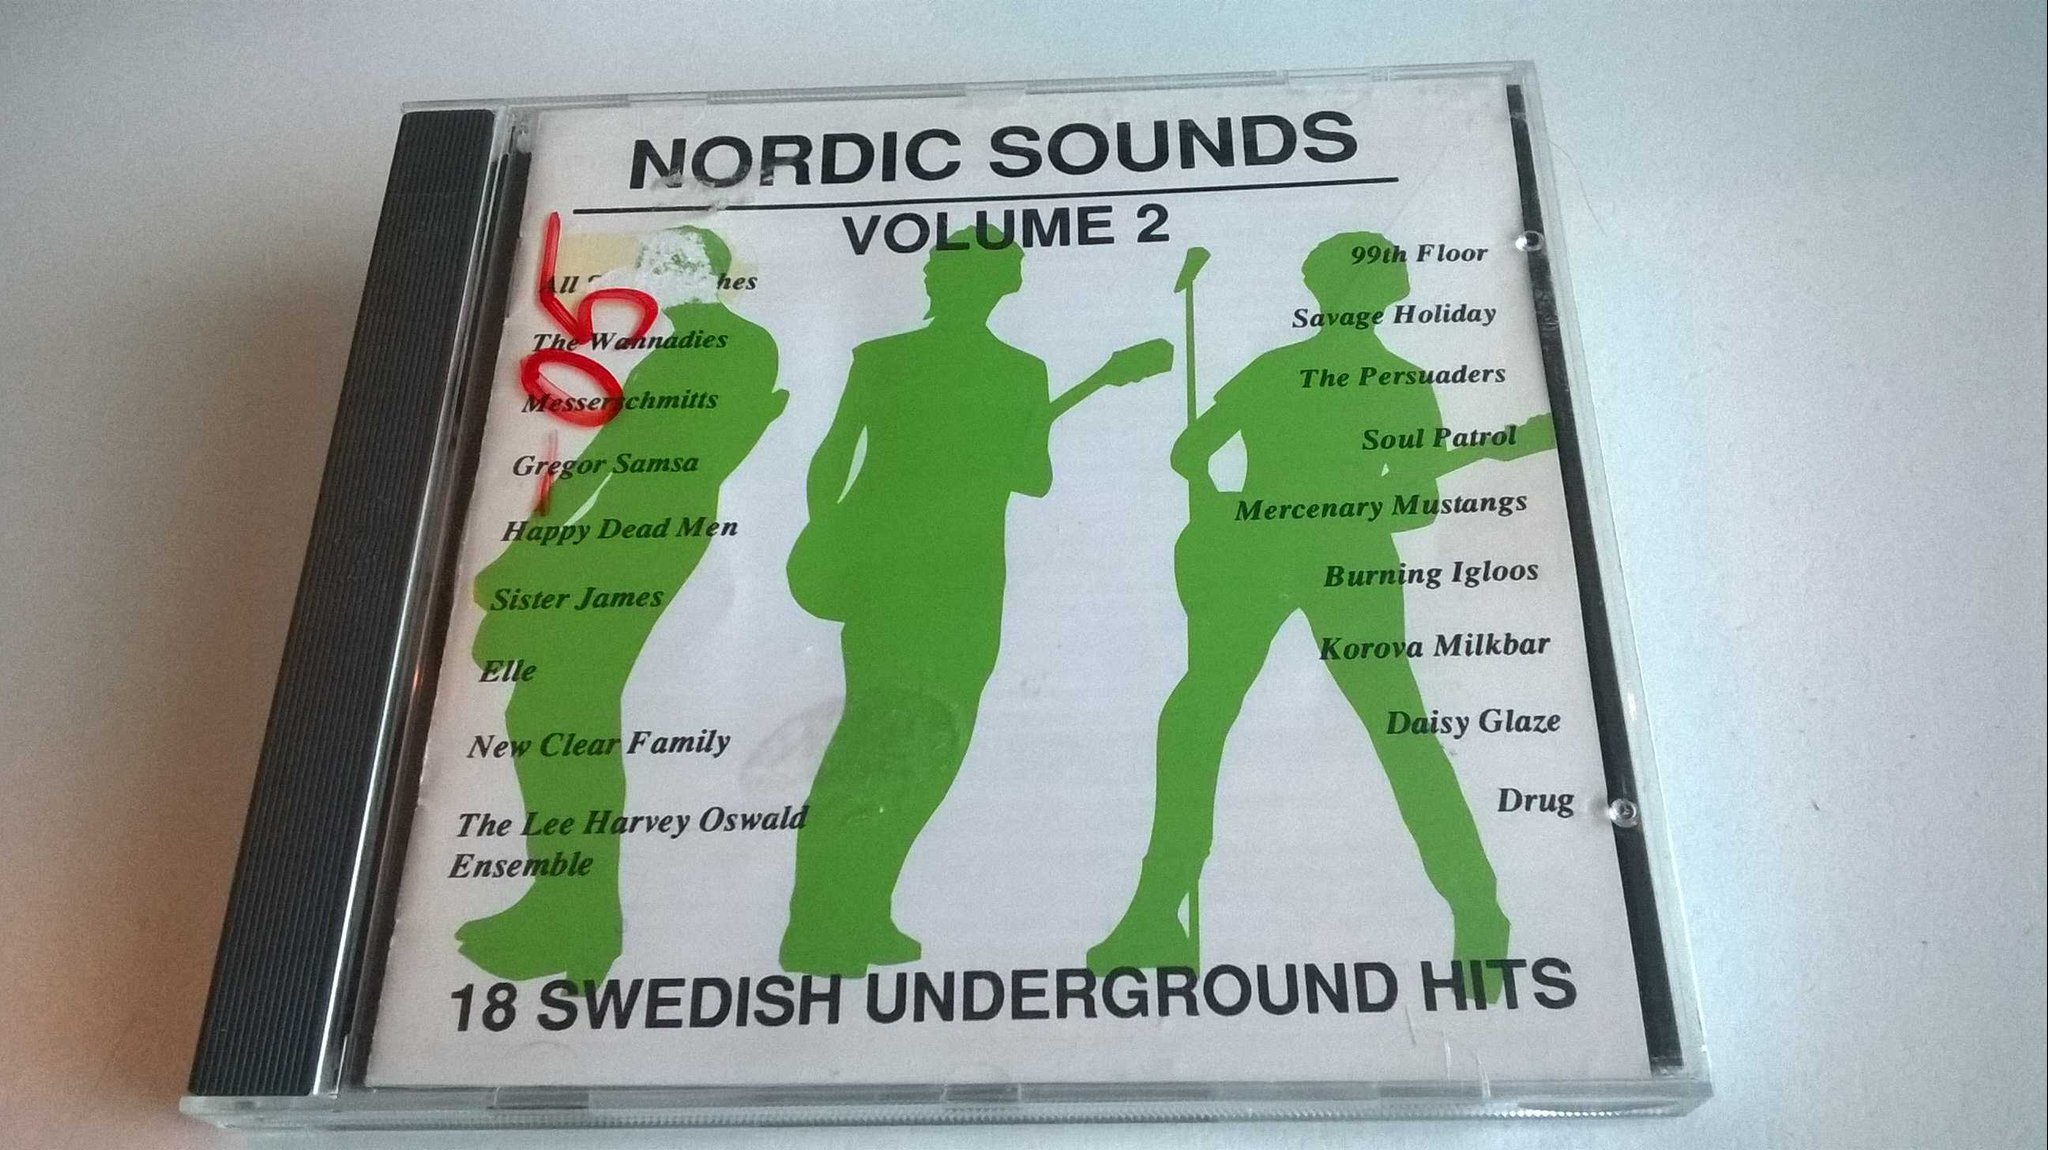 Nordic Sounds Volume 2, Swedish underground hits, CD, rare!